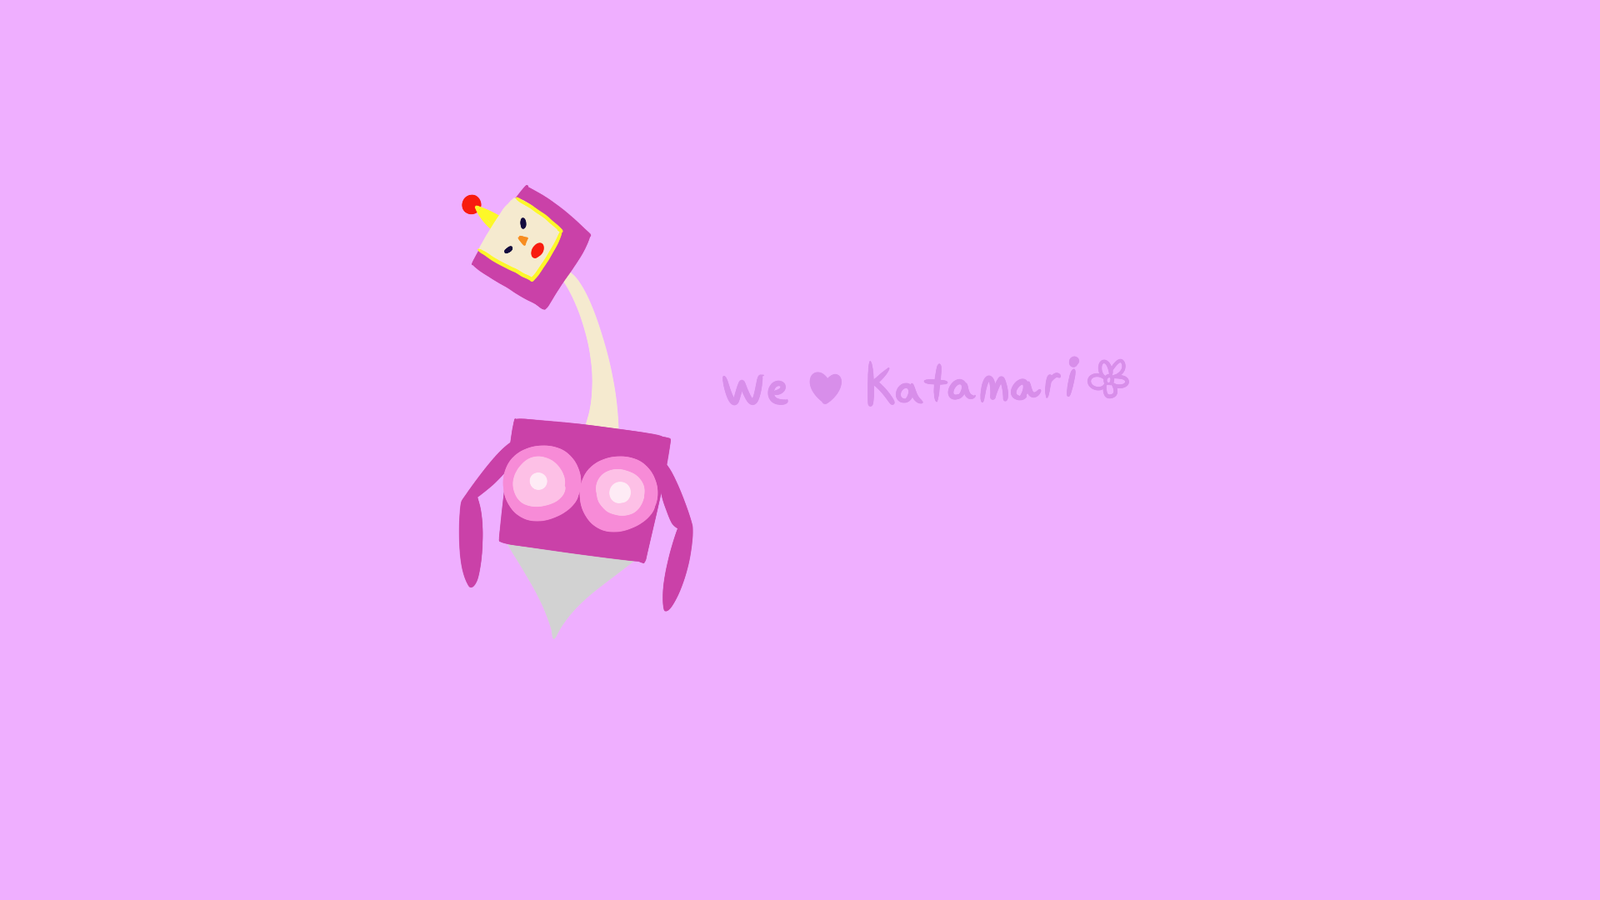 Katamari Damacy   Drooby wallpaper by BerriesSparrowMouse on 1600x900